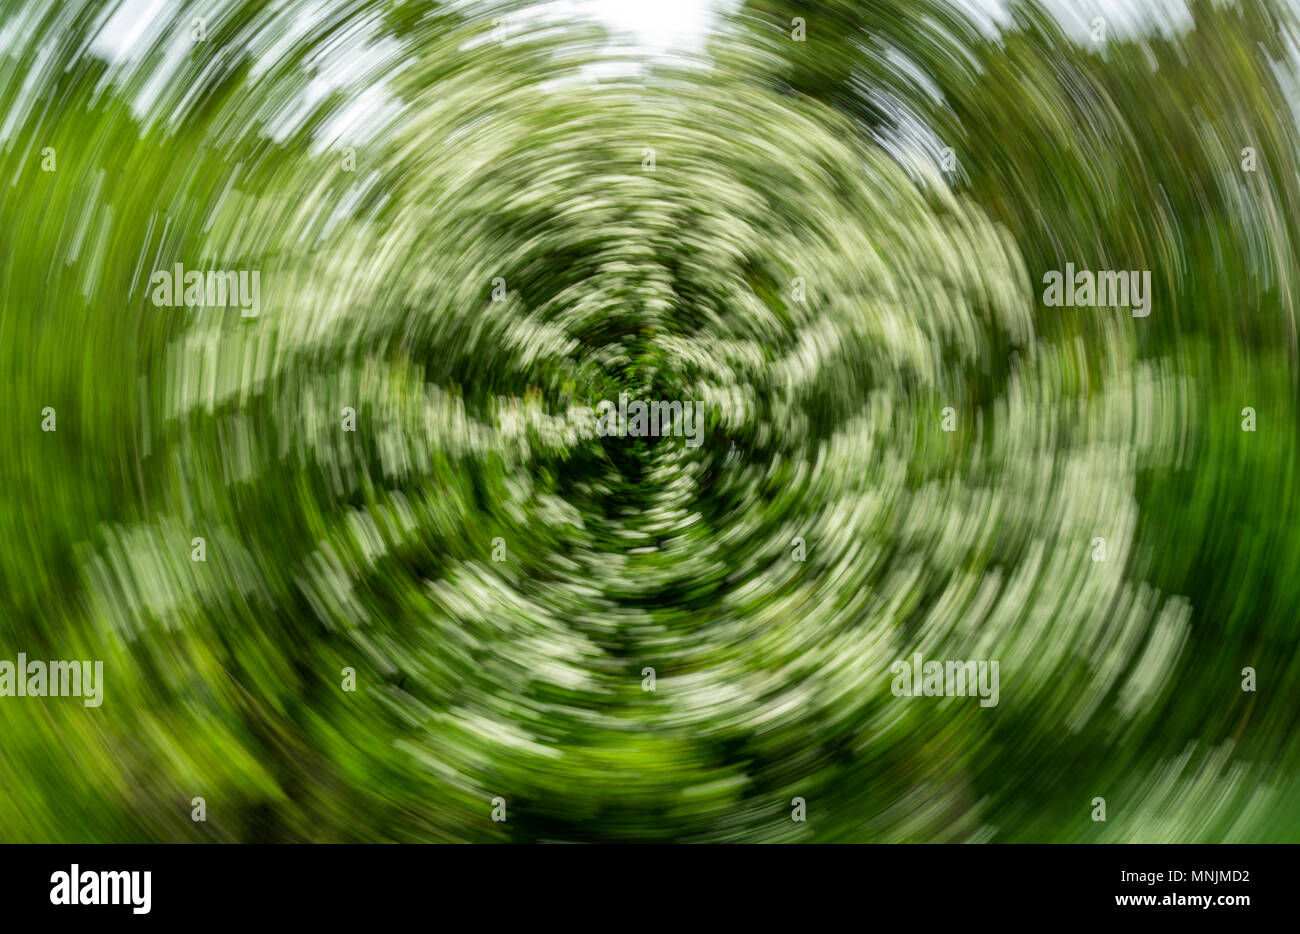 Abstract Spiral Effect Background - Hawthorn Tree - Stock Image